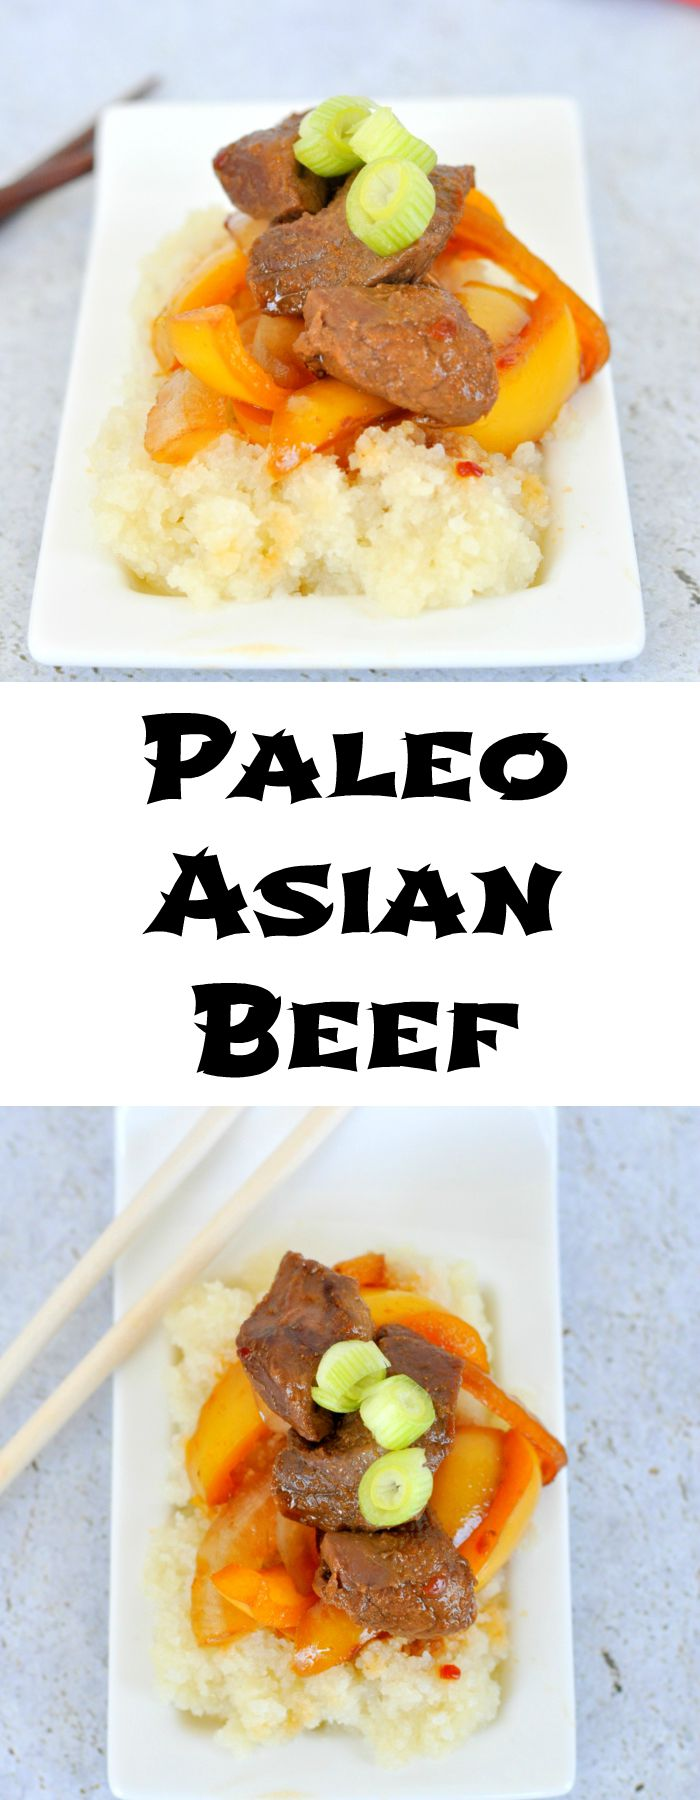 Paleo Asian Beef is a quick and easy meal that is perfect for weeknights...or any night!